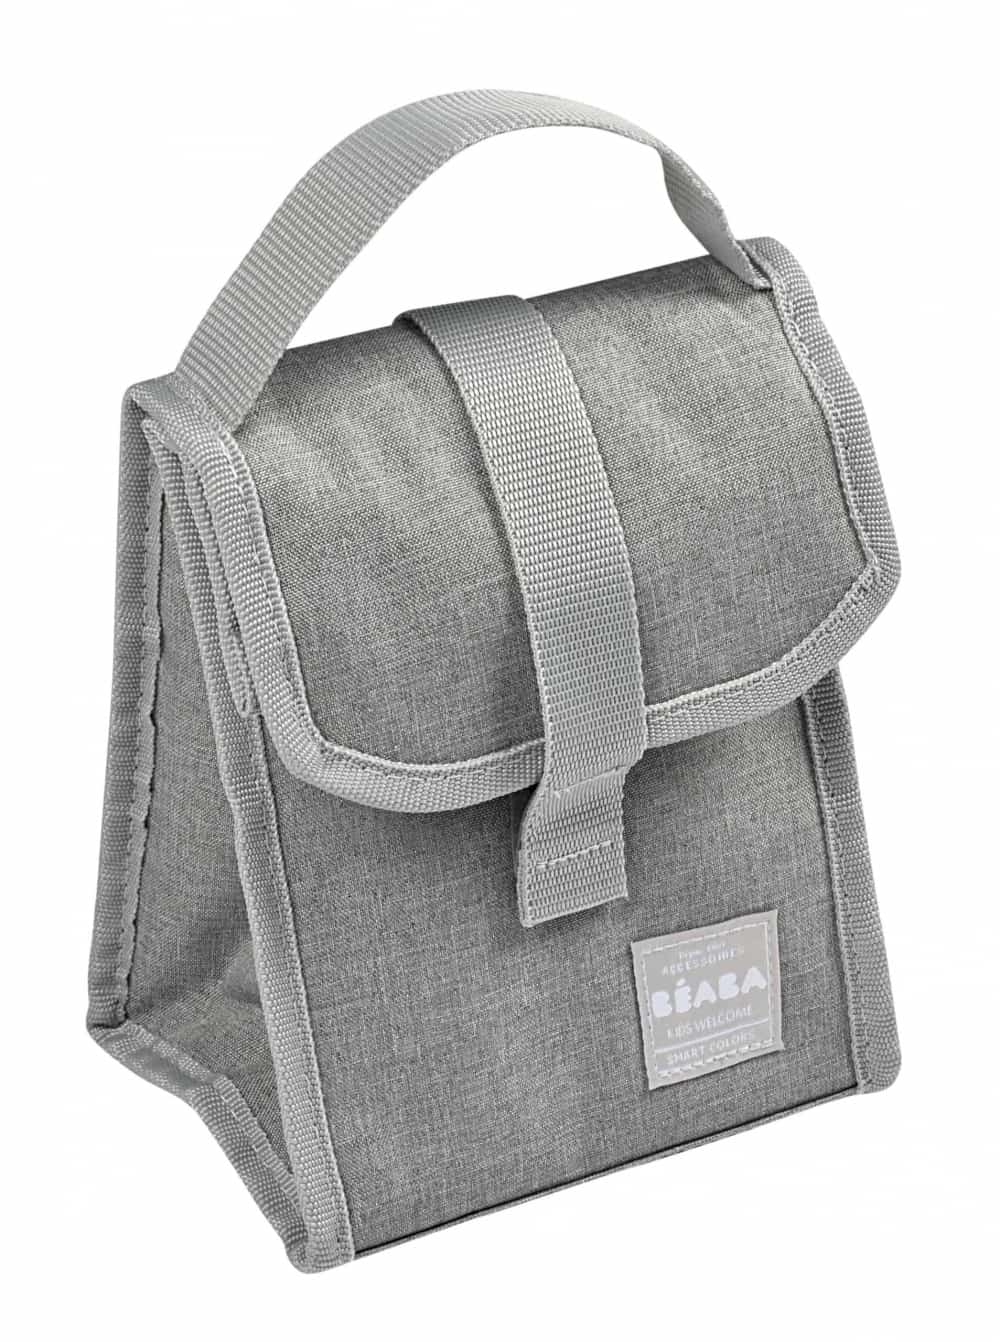 Beaba Must Have Modern Diaper Bag insulated bag